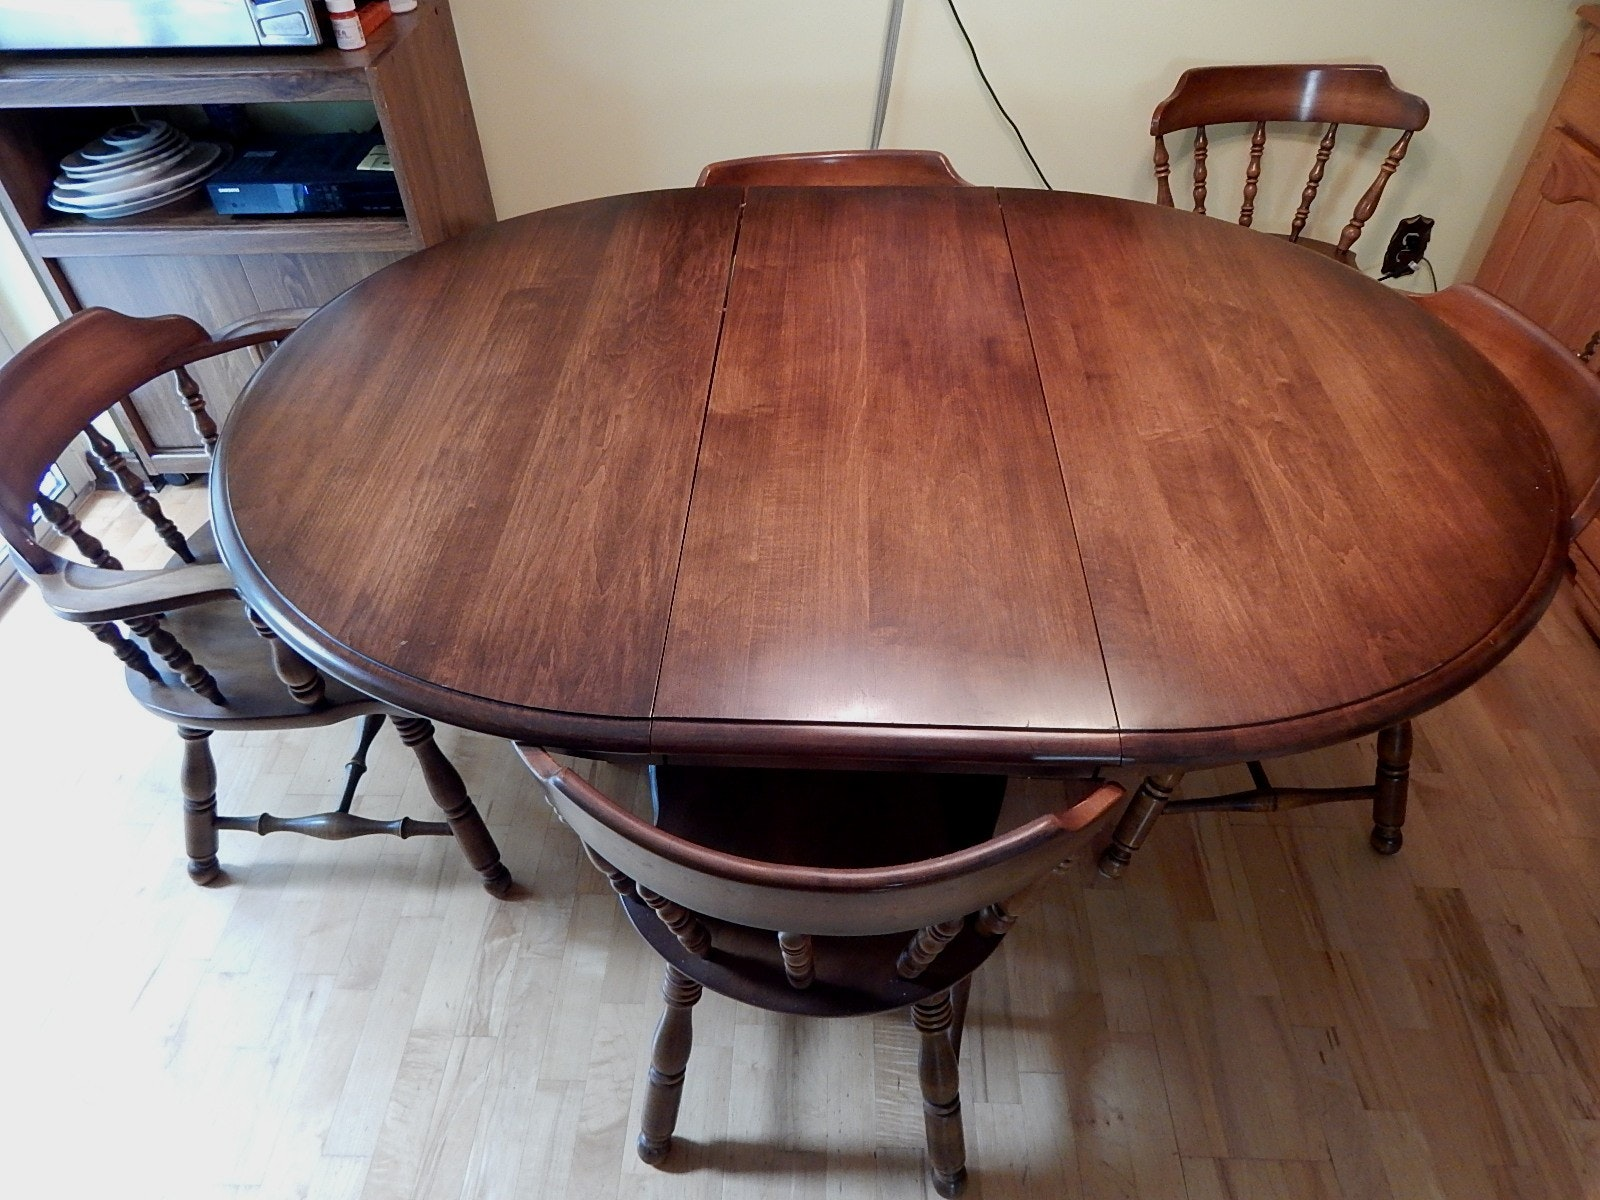 Kling Furniture Maple Table And Five Chairs ...